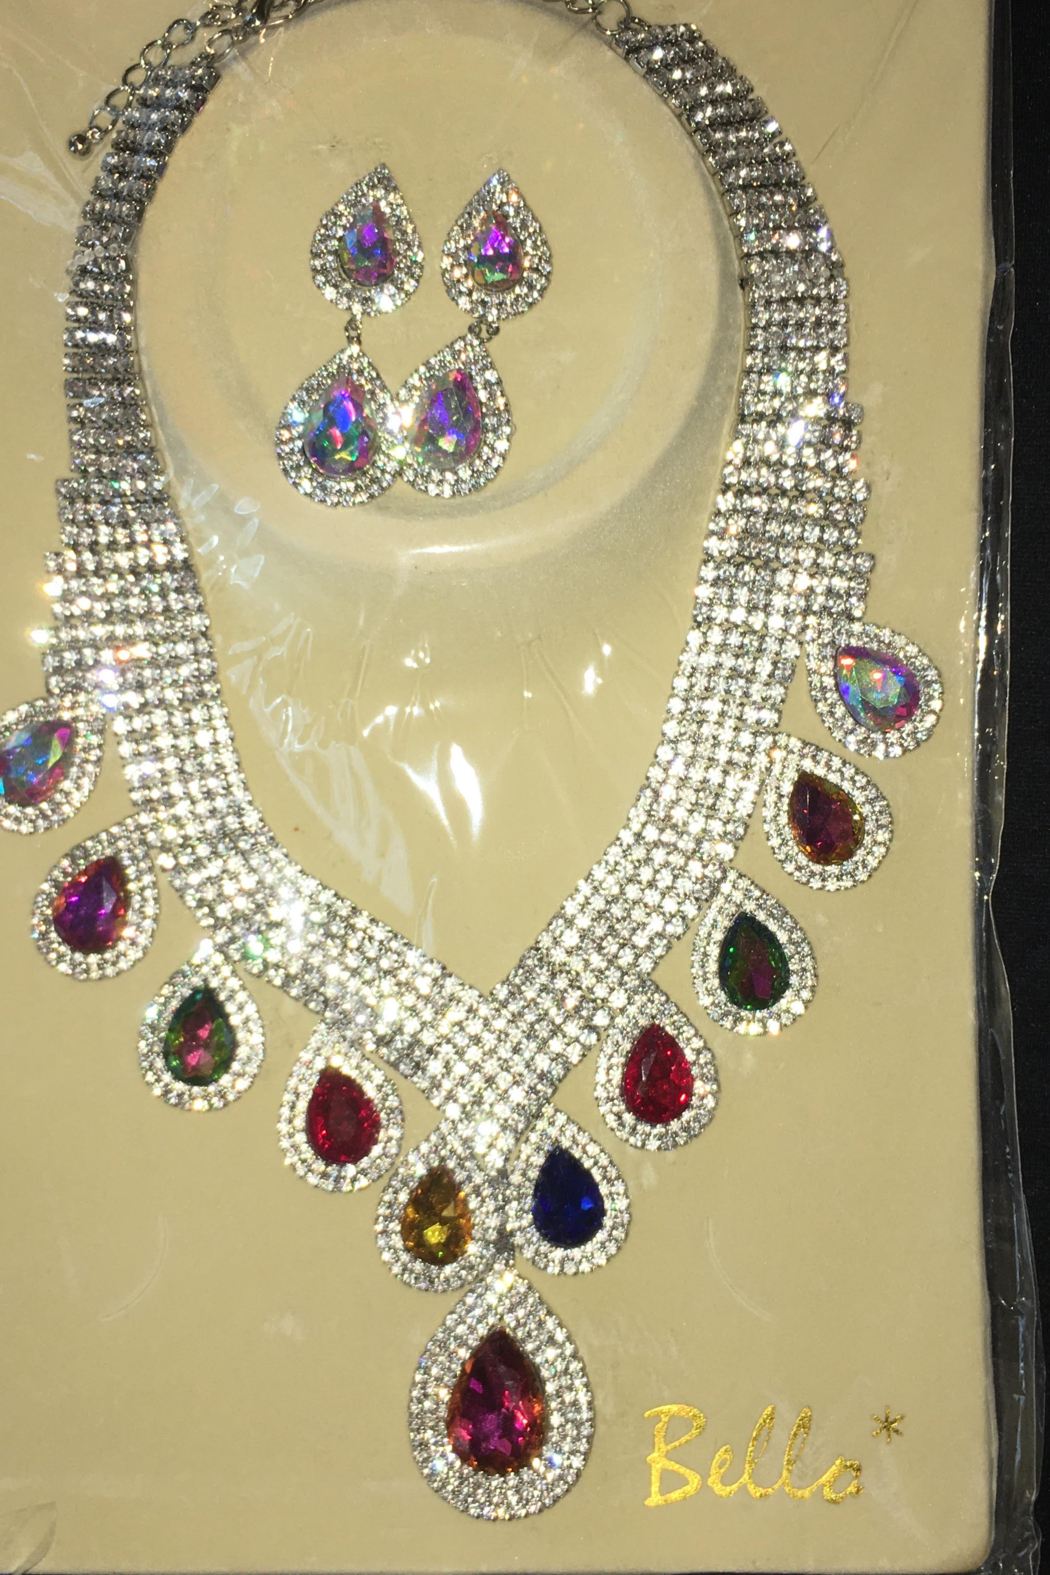 Bella  Rhinestone Sparkling Necklace with Matching Hanging Teardrop Earrings - Main Image